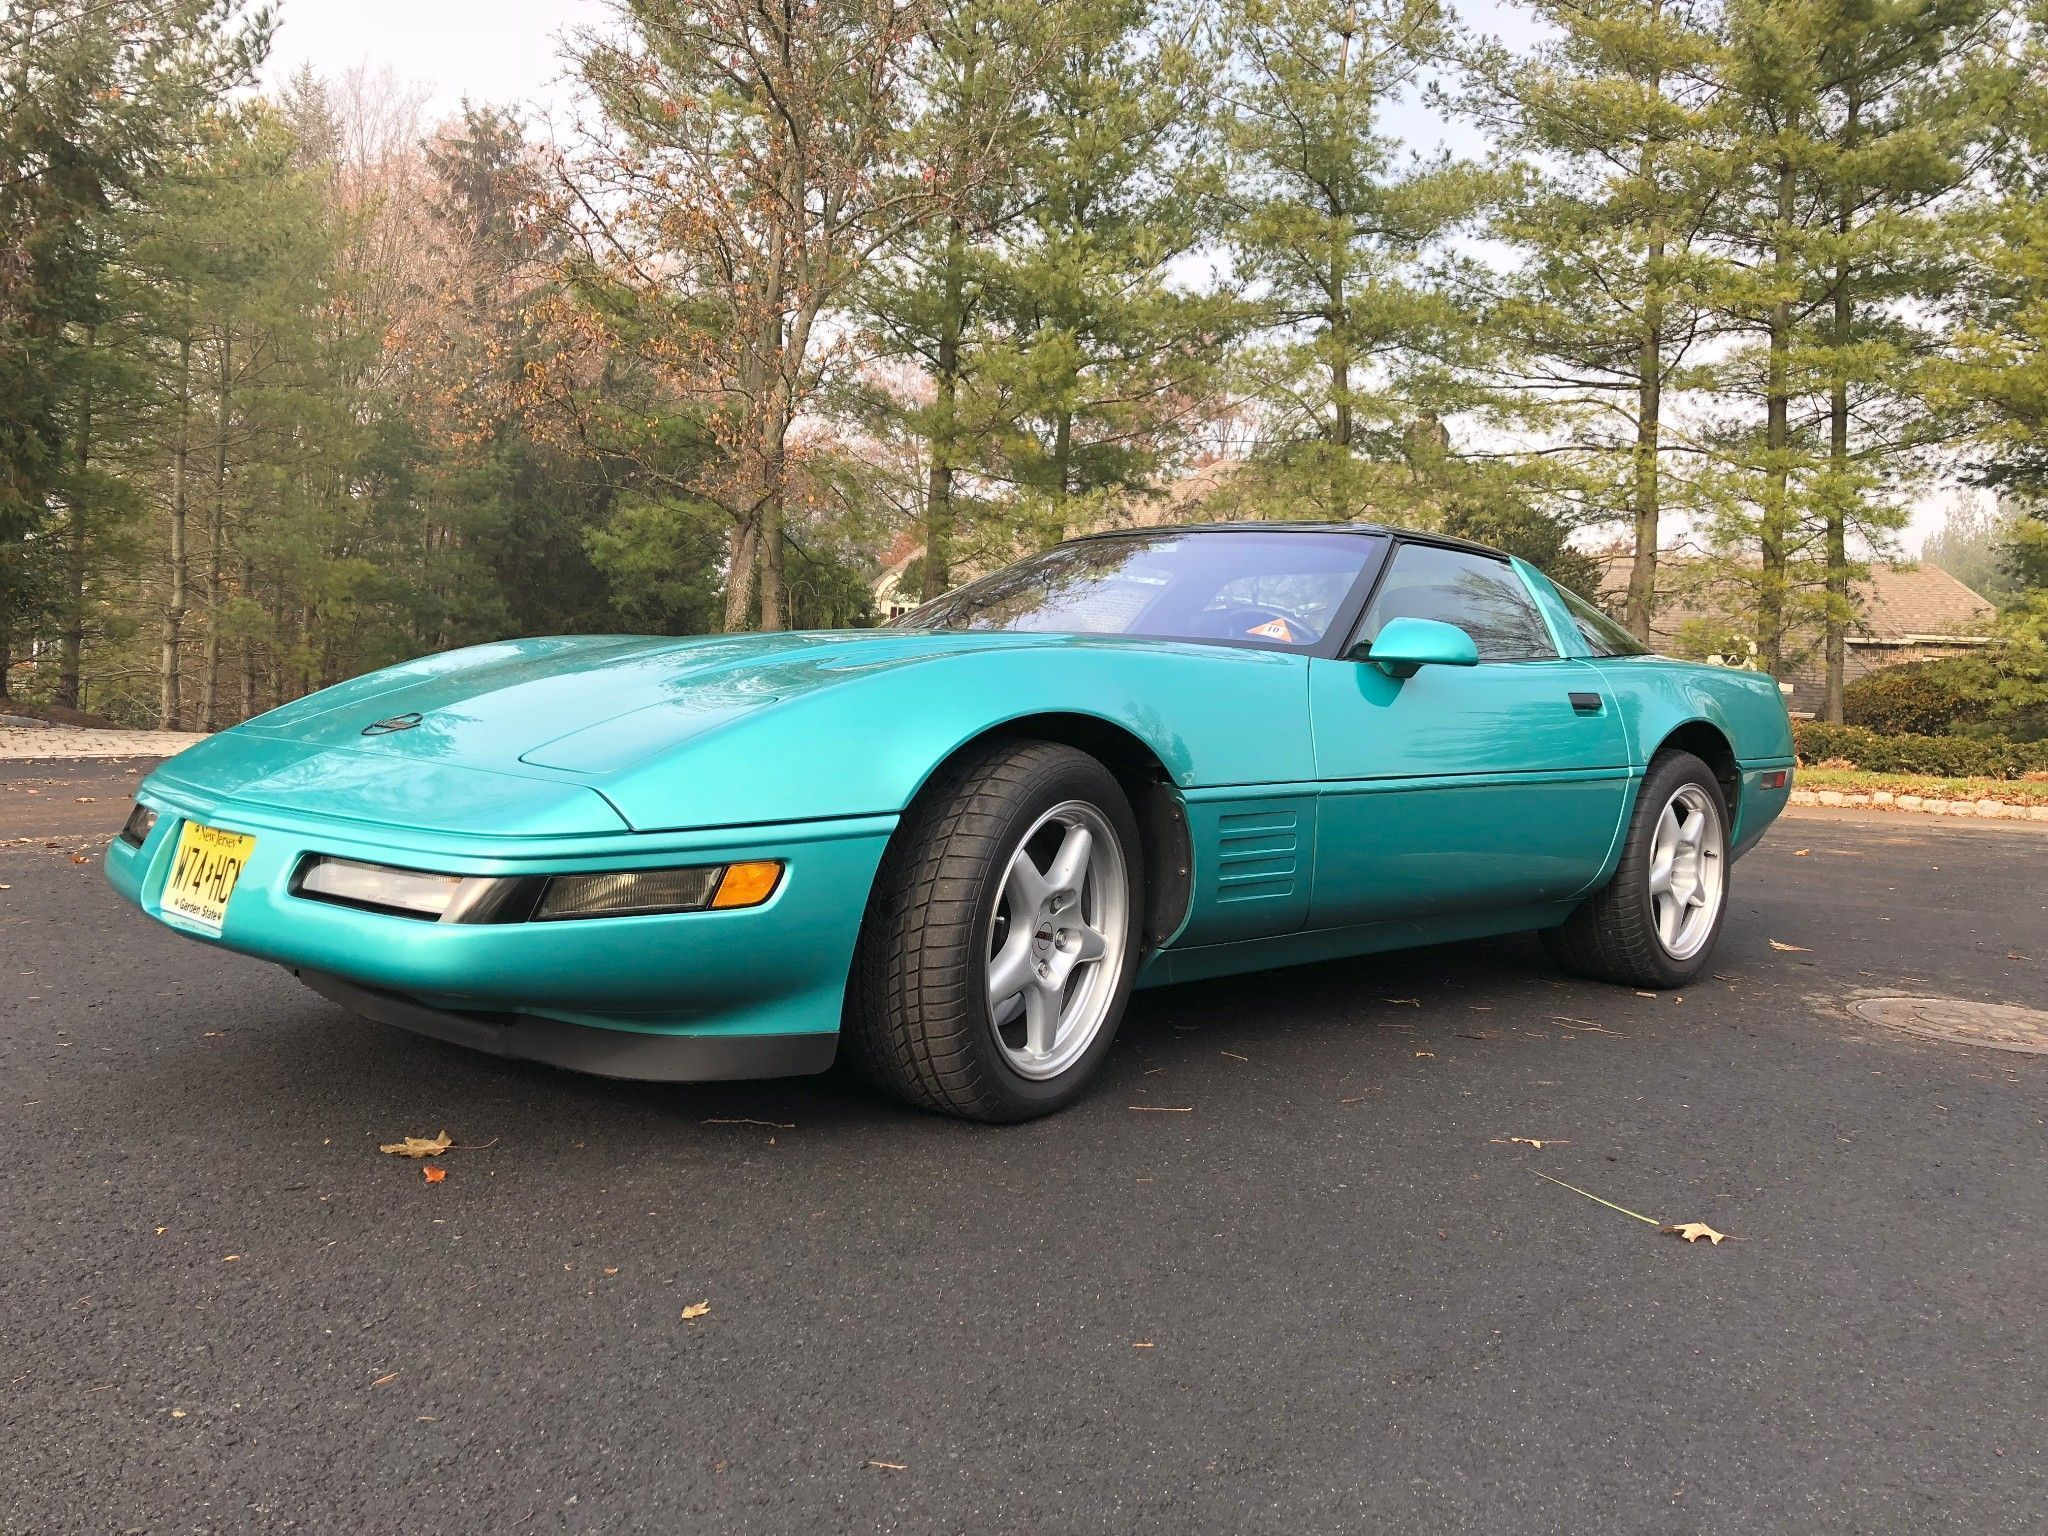 Bid for the chance to own a 26K Mile 1991 Chevrolet Corvette ZR 1 at